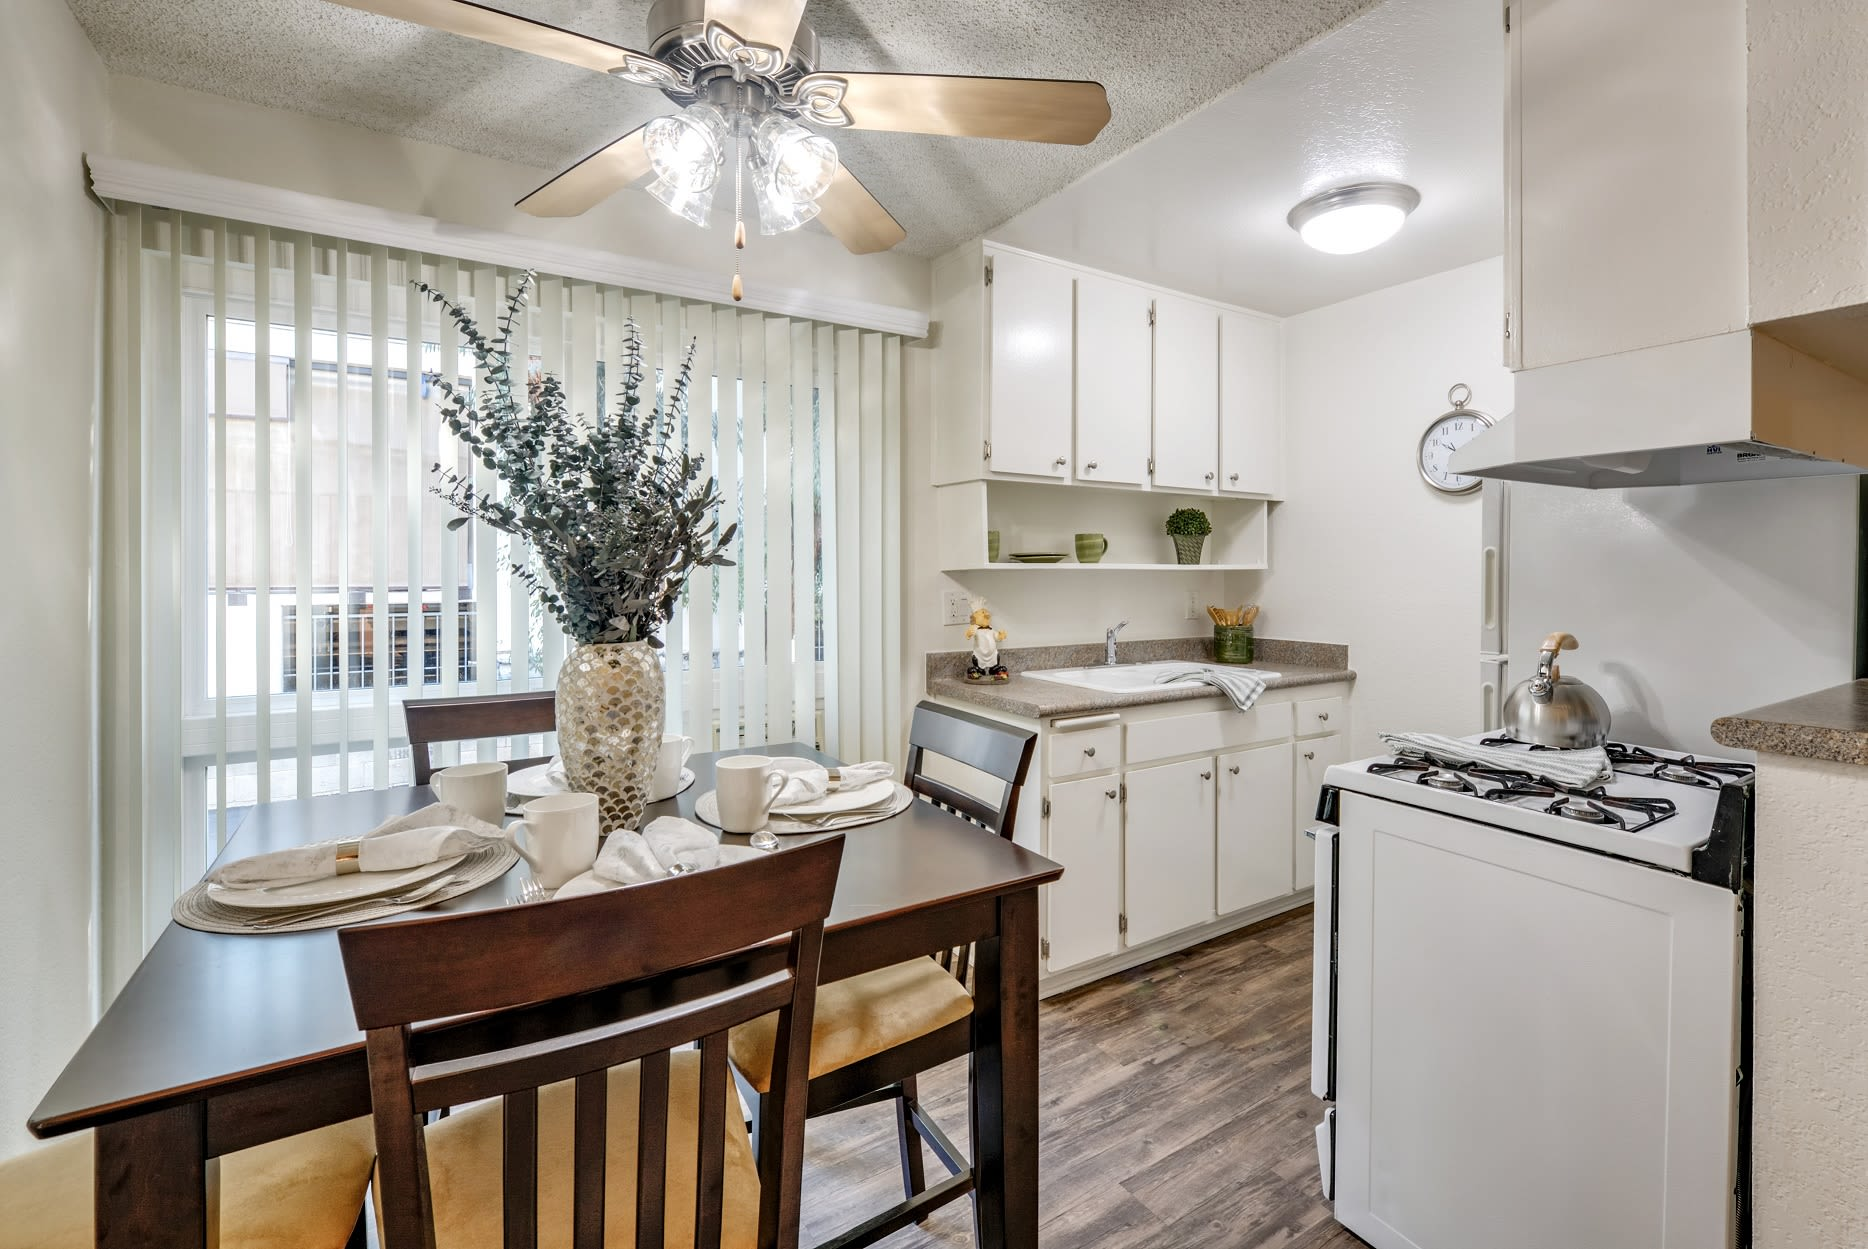 Kitchen and dining area with wood style floors at The Newporter in Tarzana, California